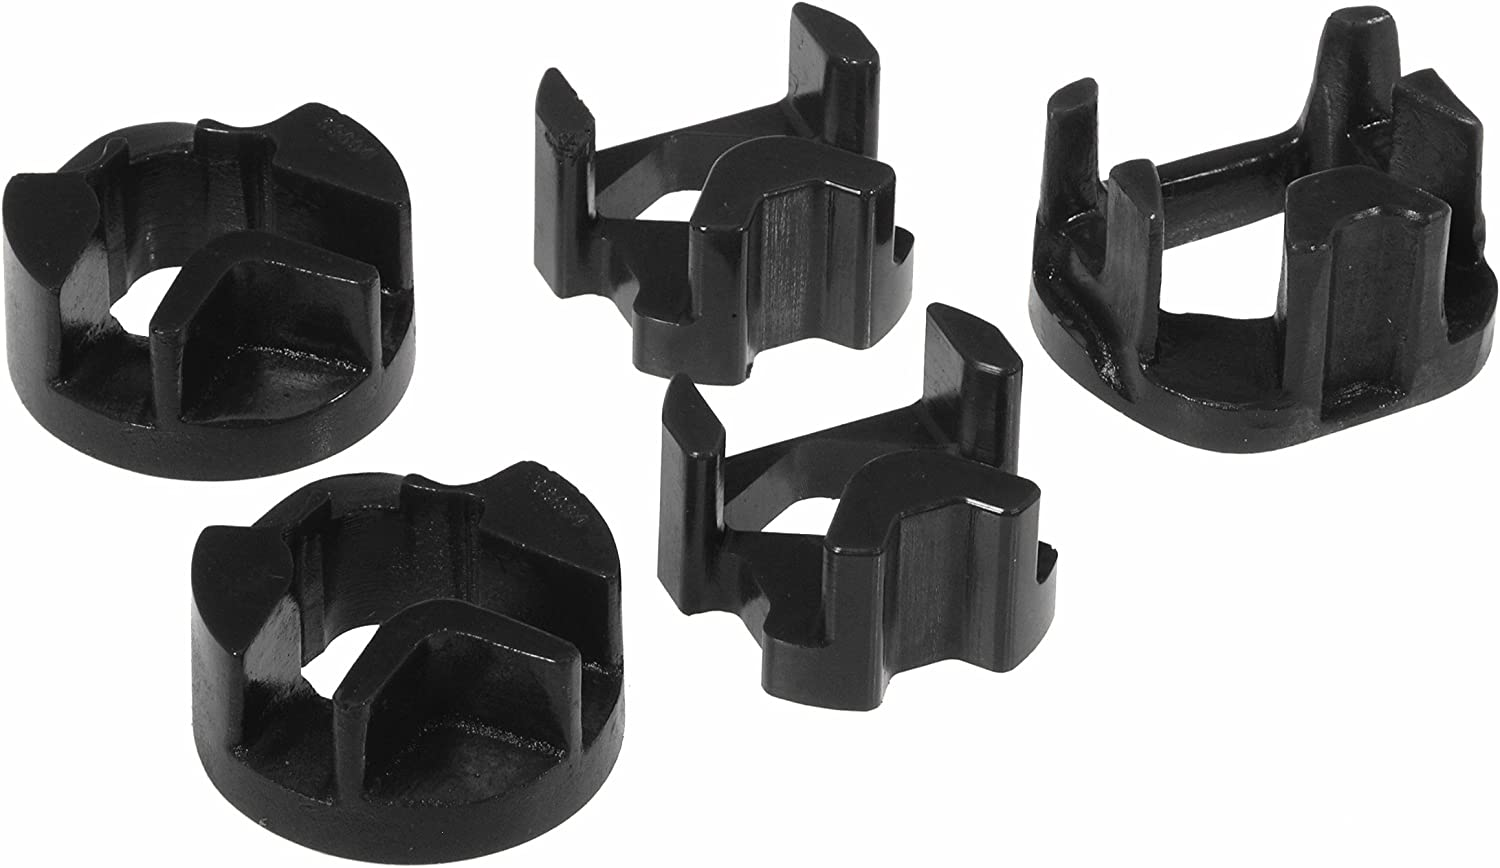 Today's only Prothane Ranking TOP19 4-1901-BL Black All 3 Mount Kit